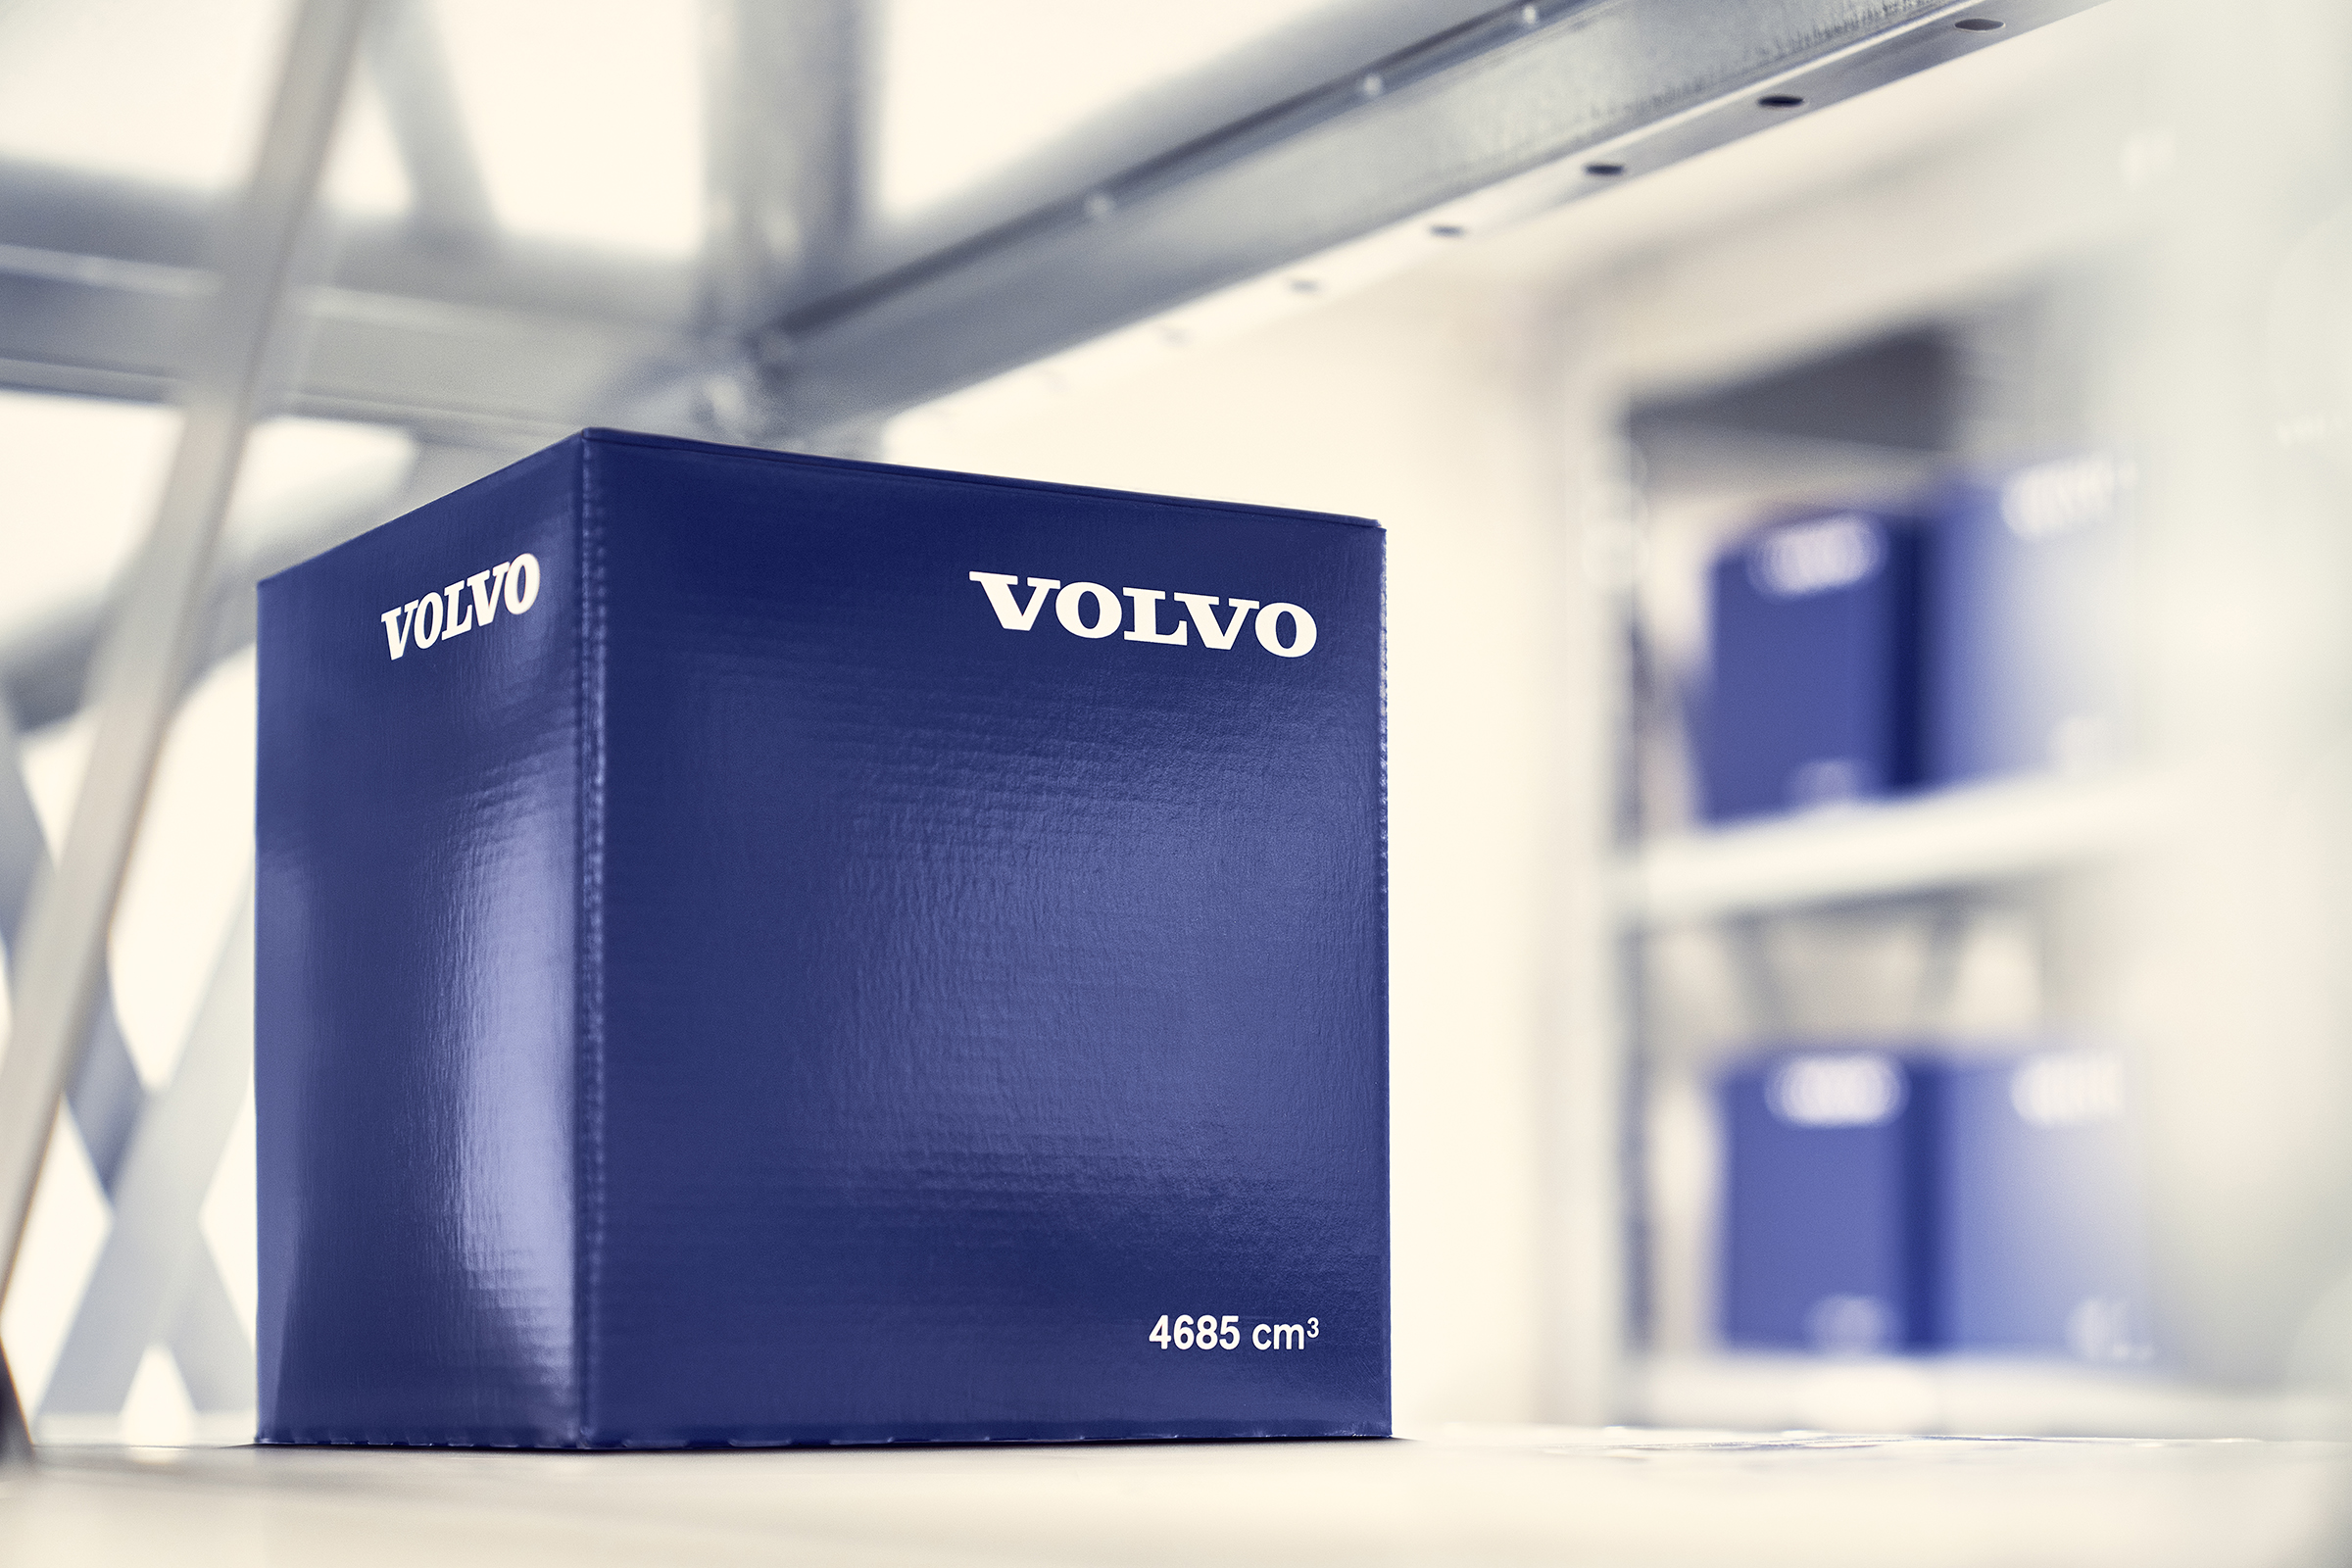 A blue Genuine Volvo Parts box on a shelf